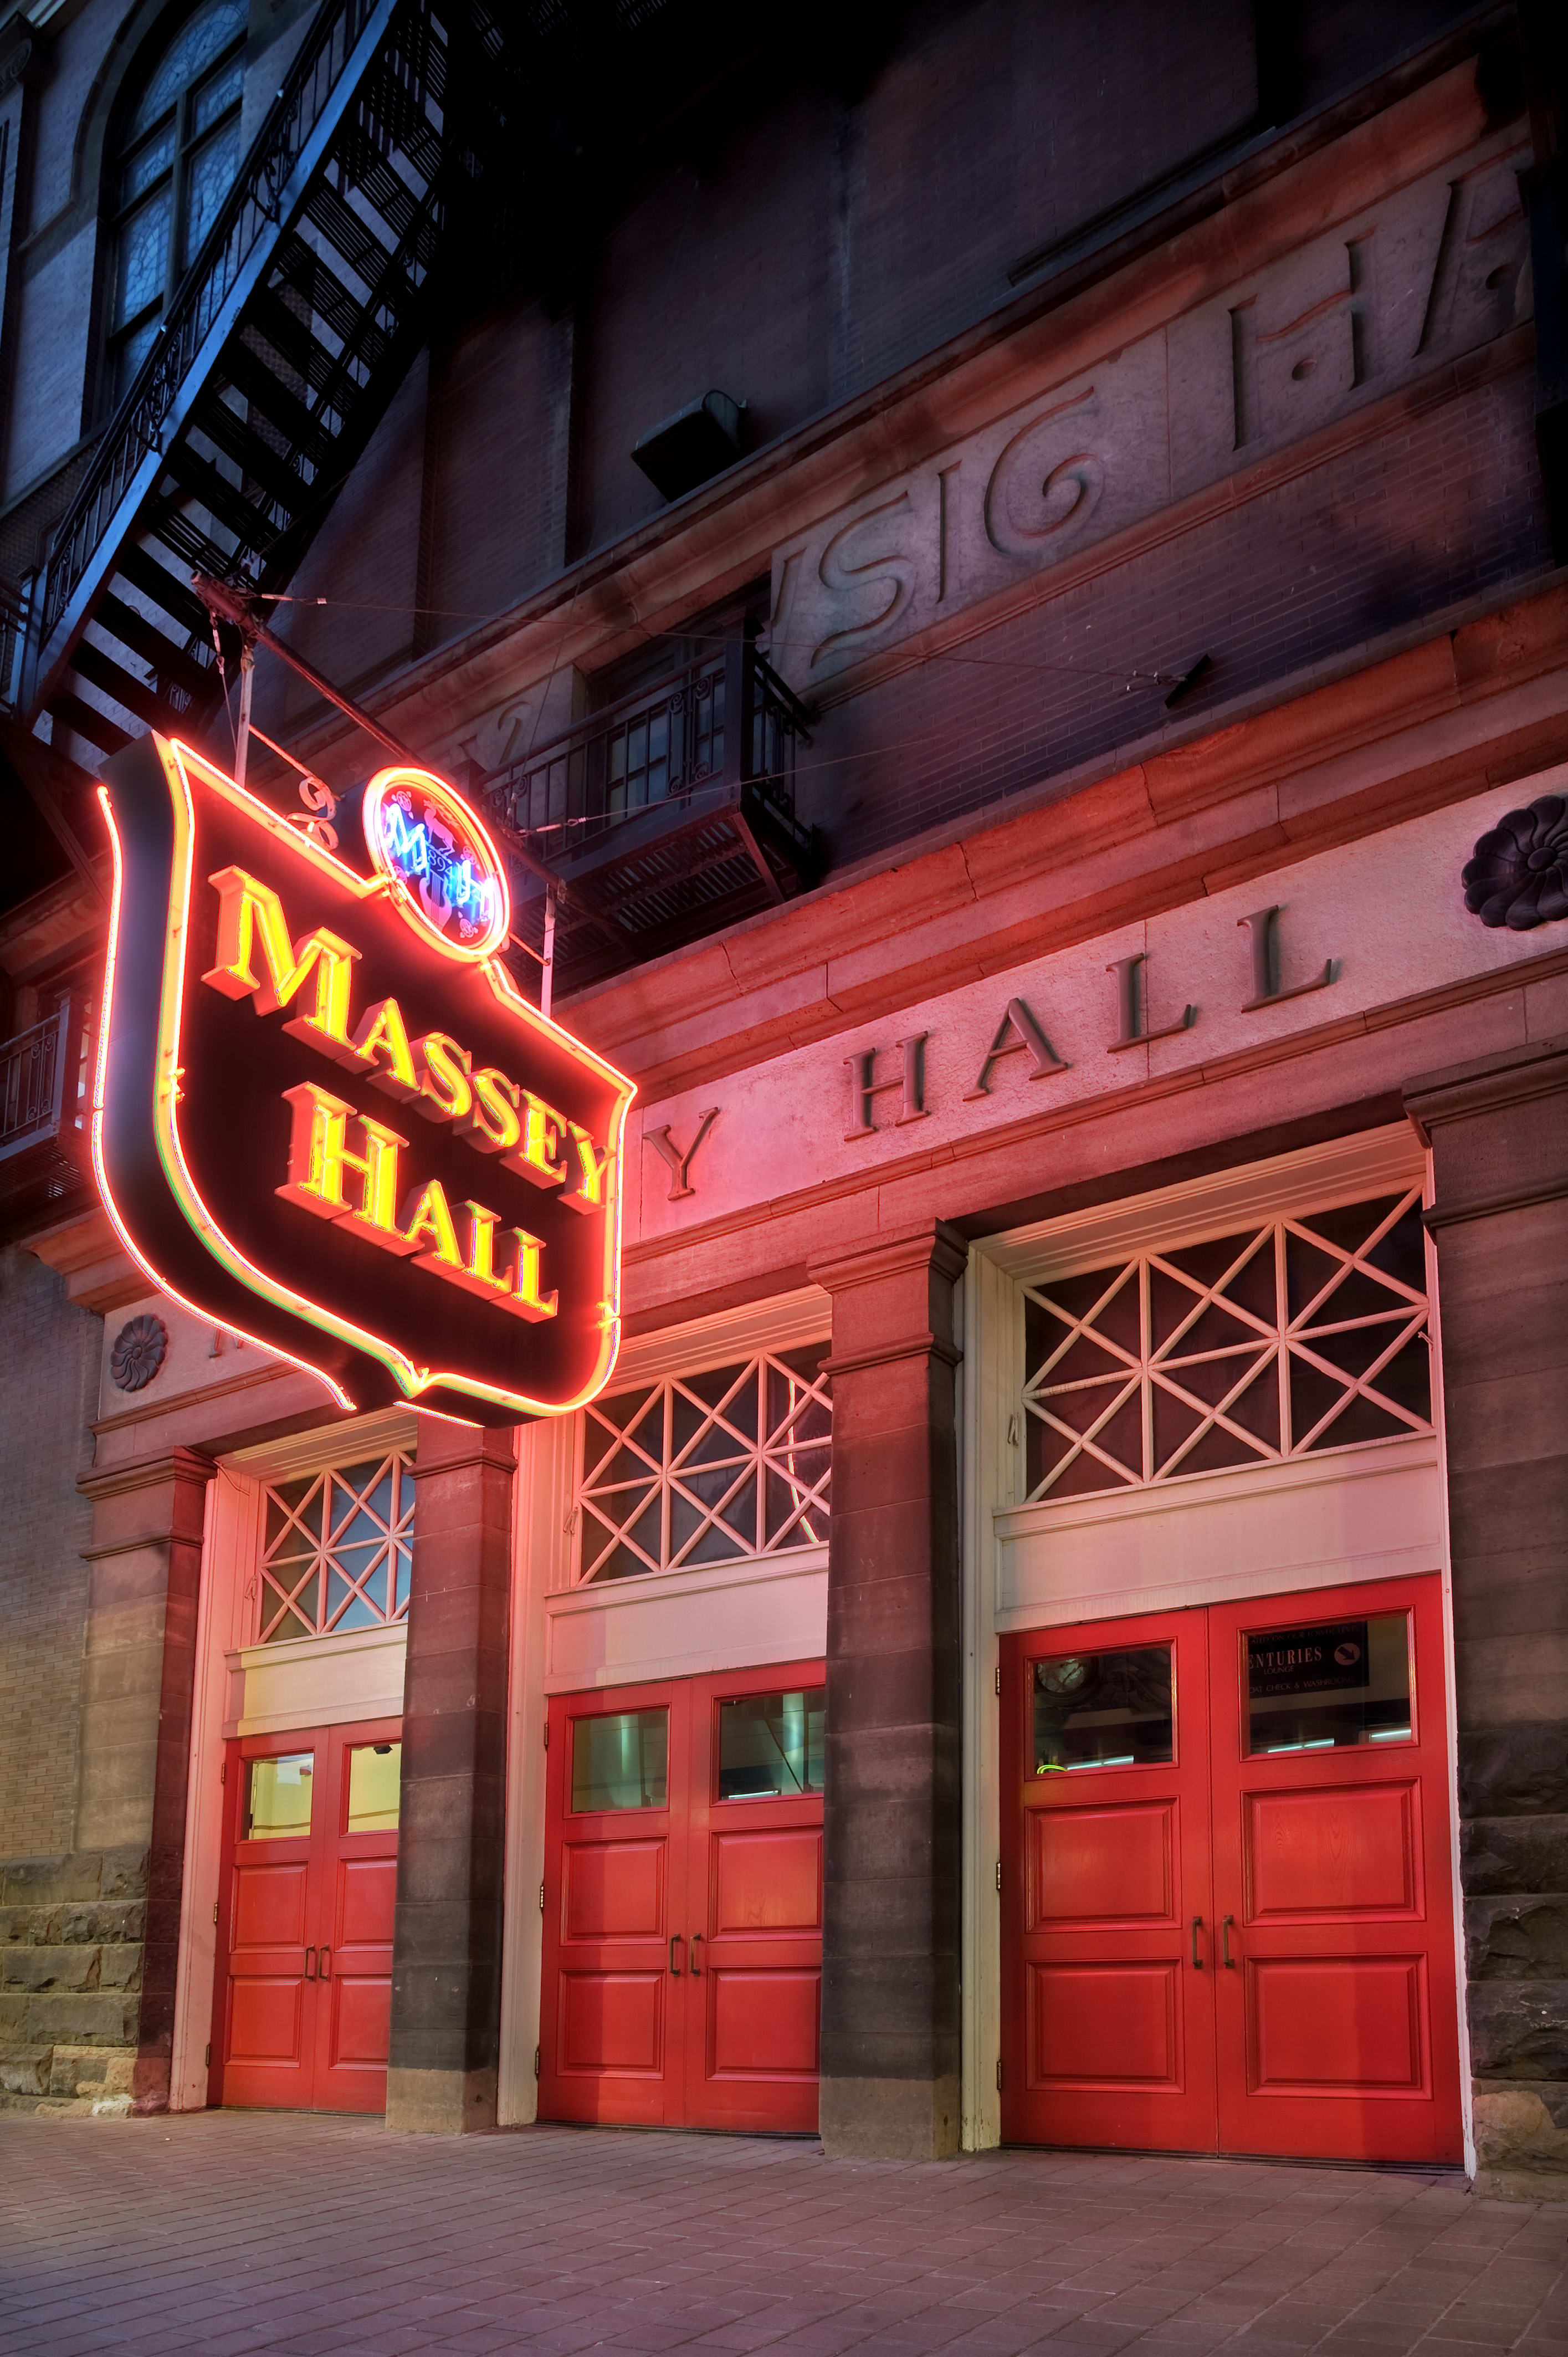 Massey Hall Sign with Red Doors